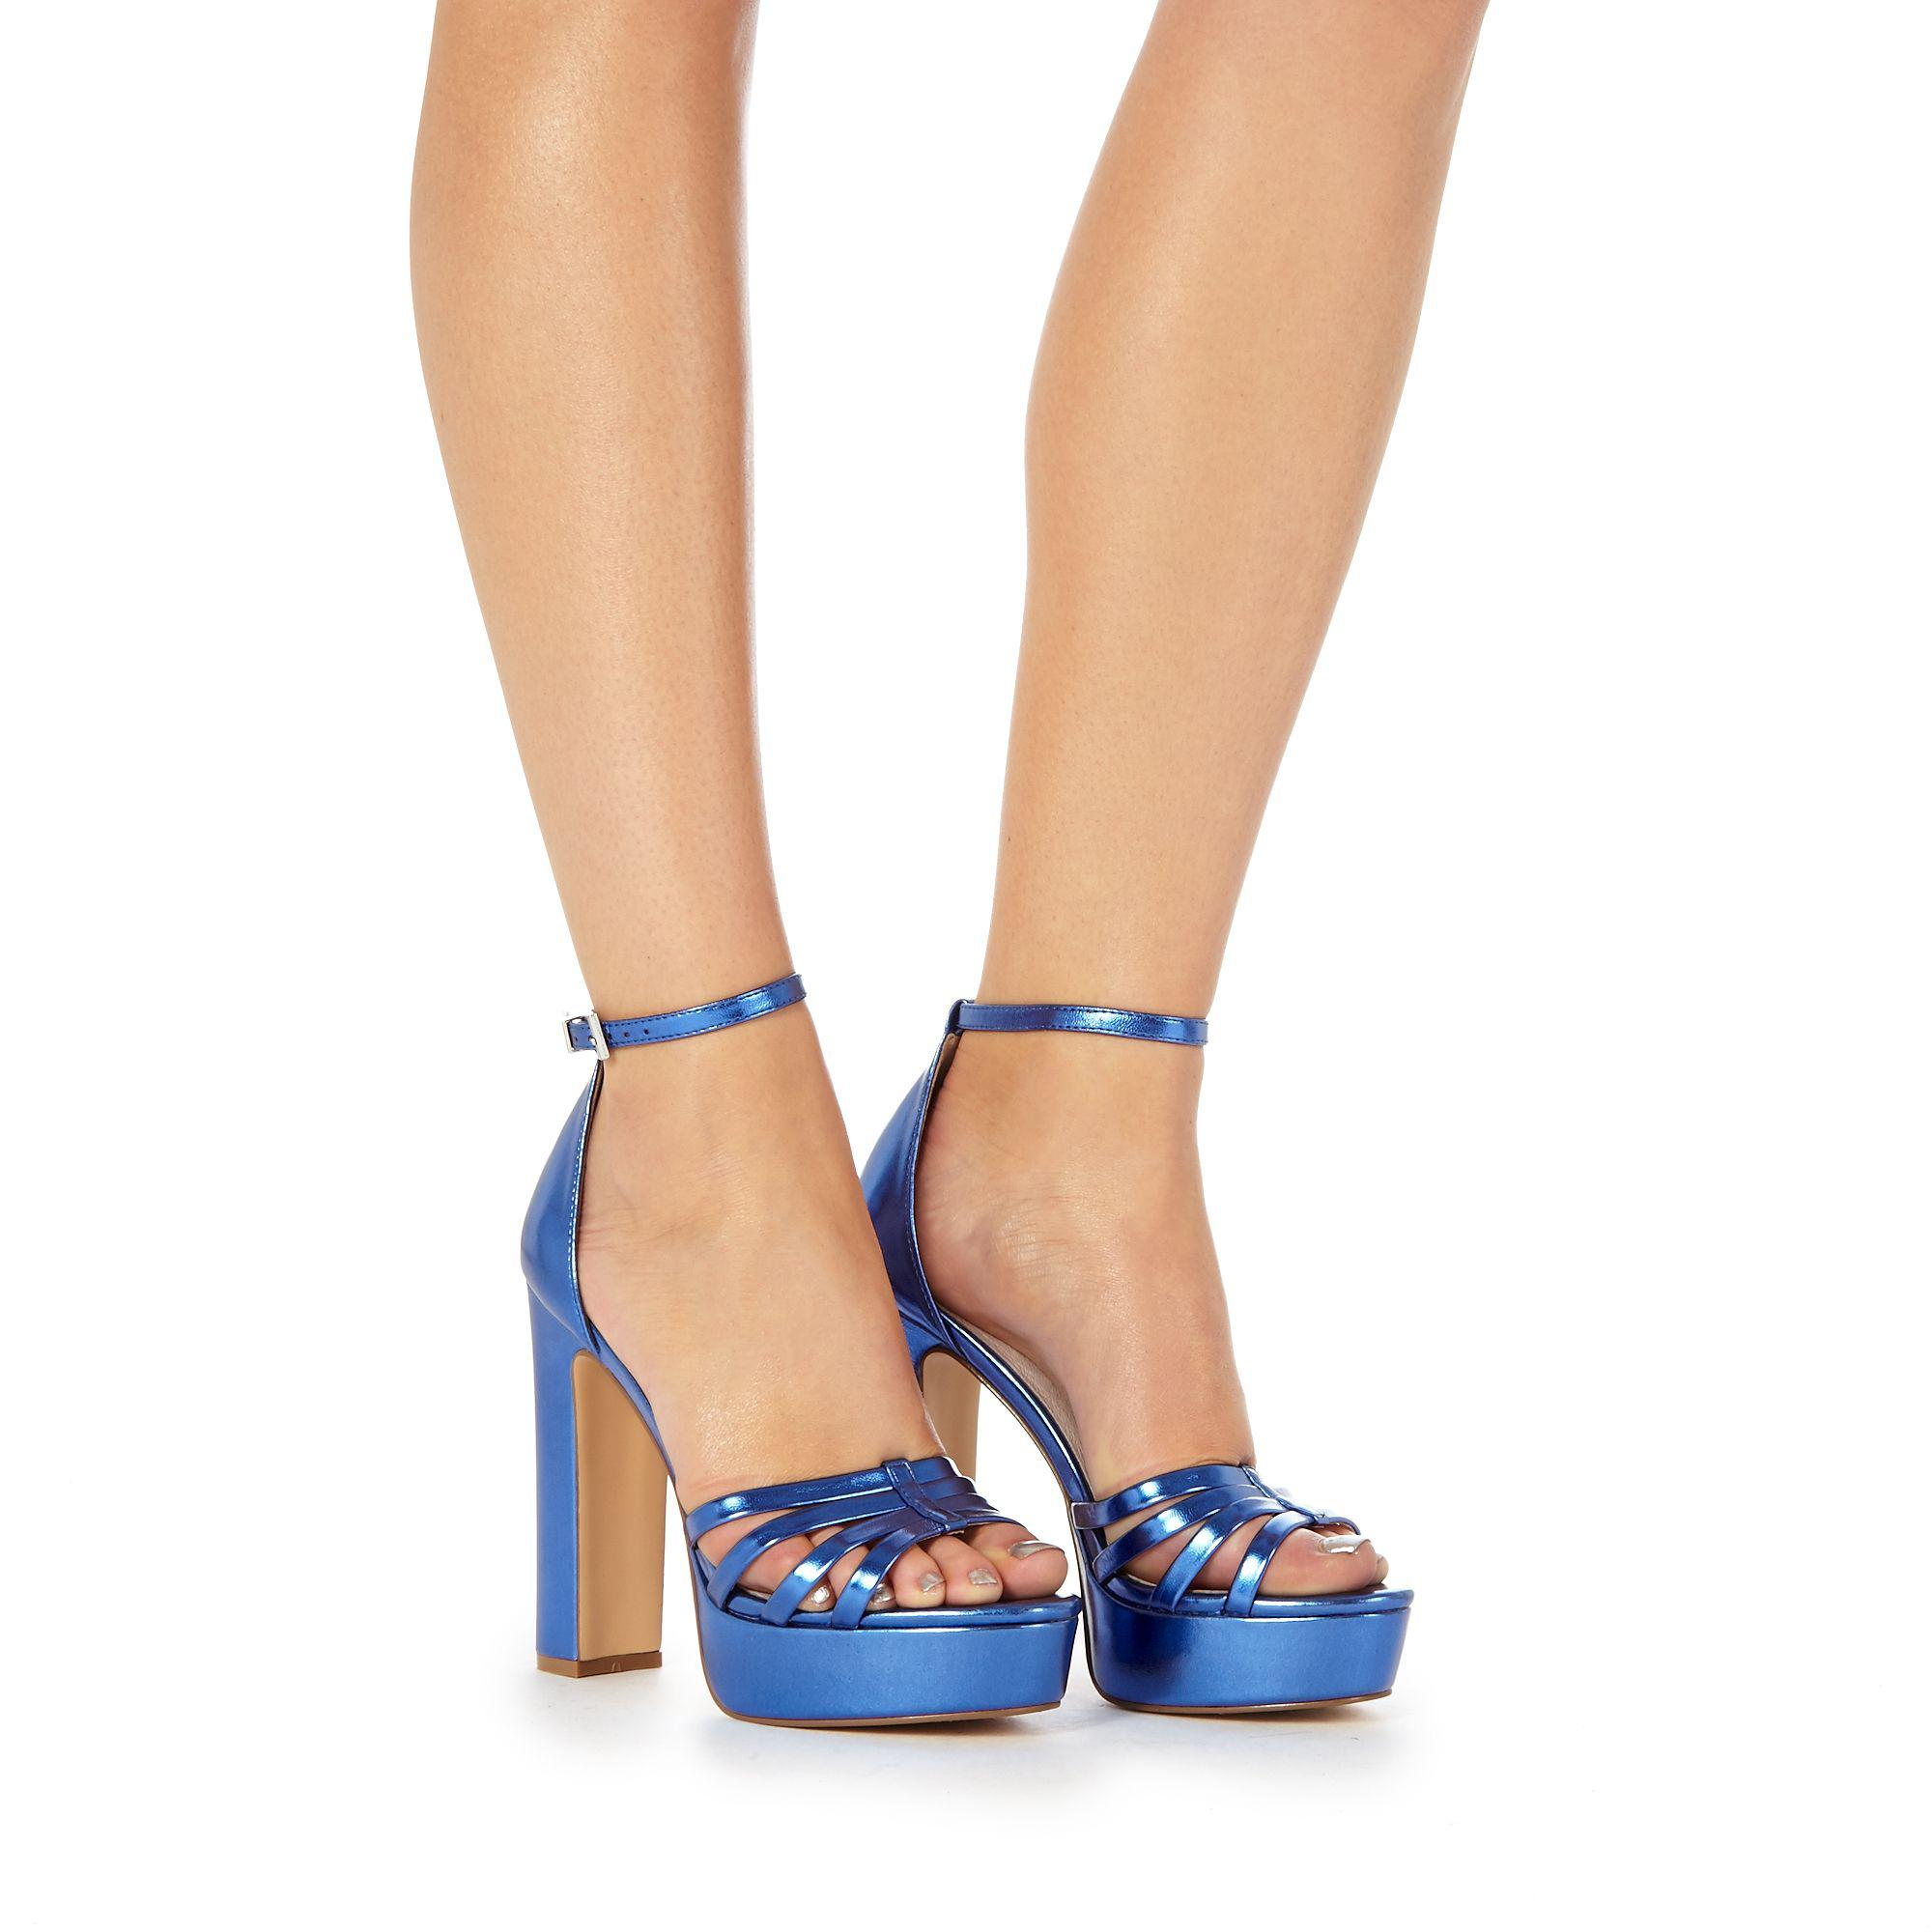 83aba1571e4 Faith Blue  lelly  High Block Heel Ankle Strap Sandals in Blue - Lyst